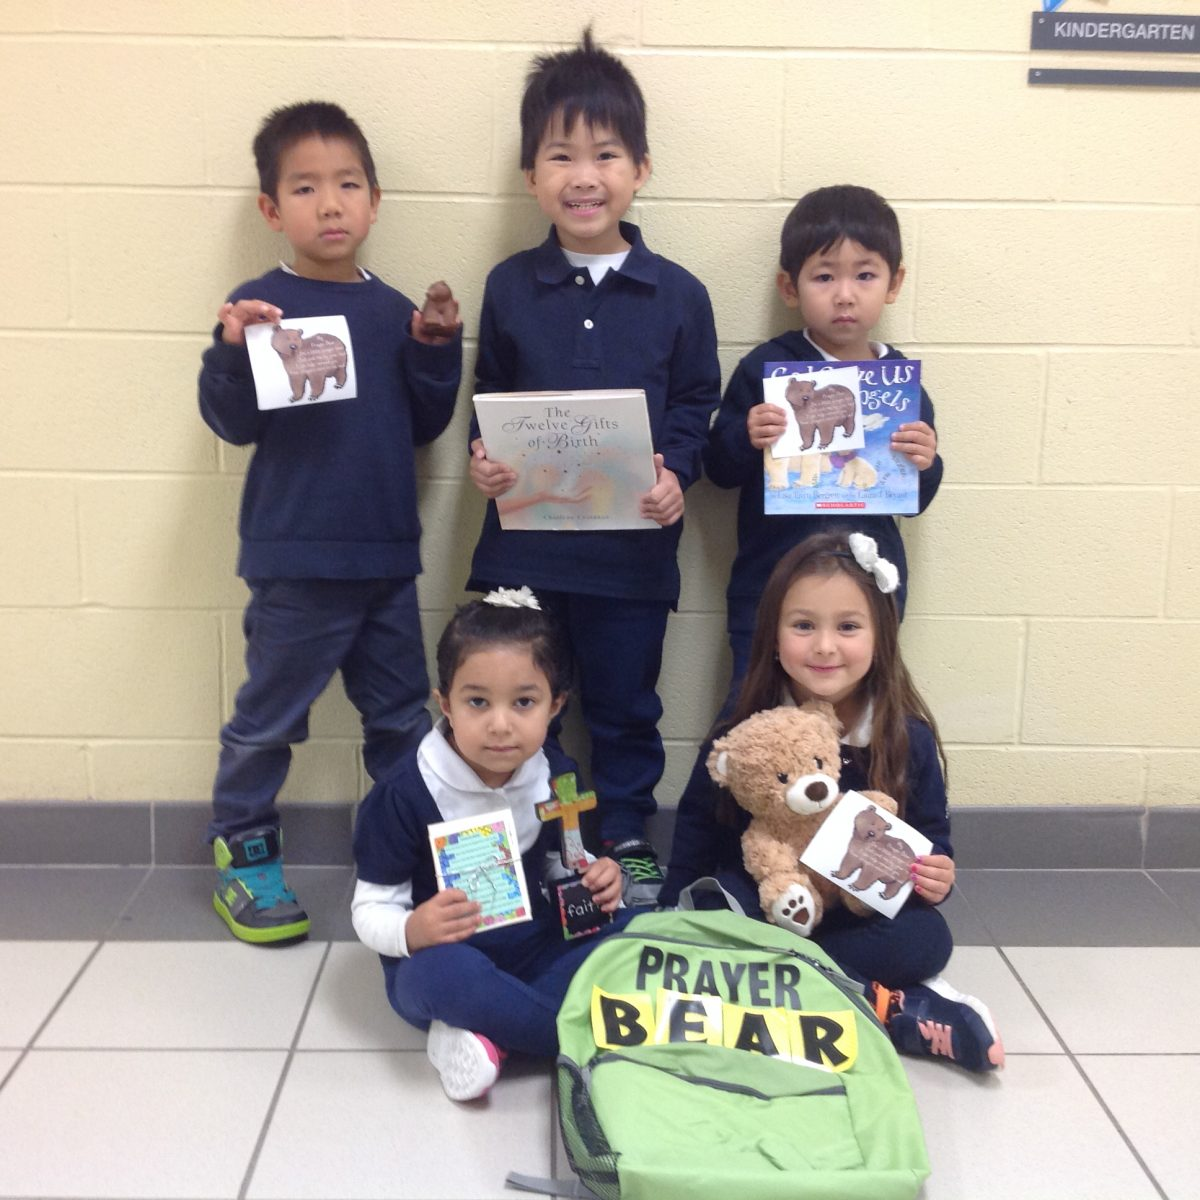 Meet our FDK Prayer Bear!!